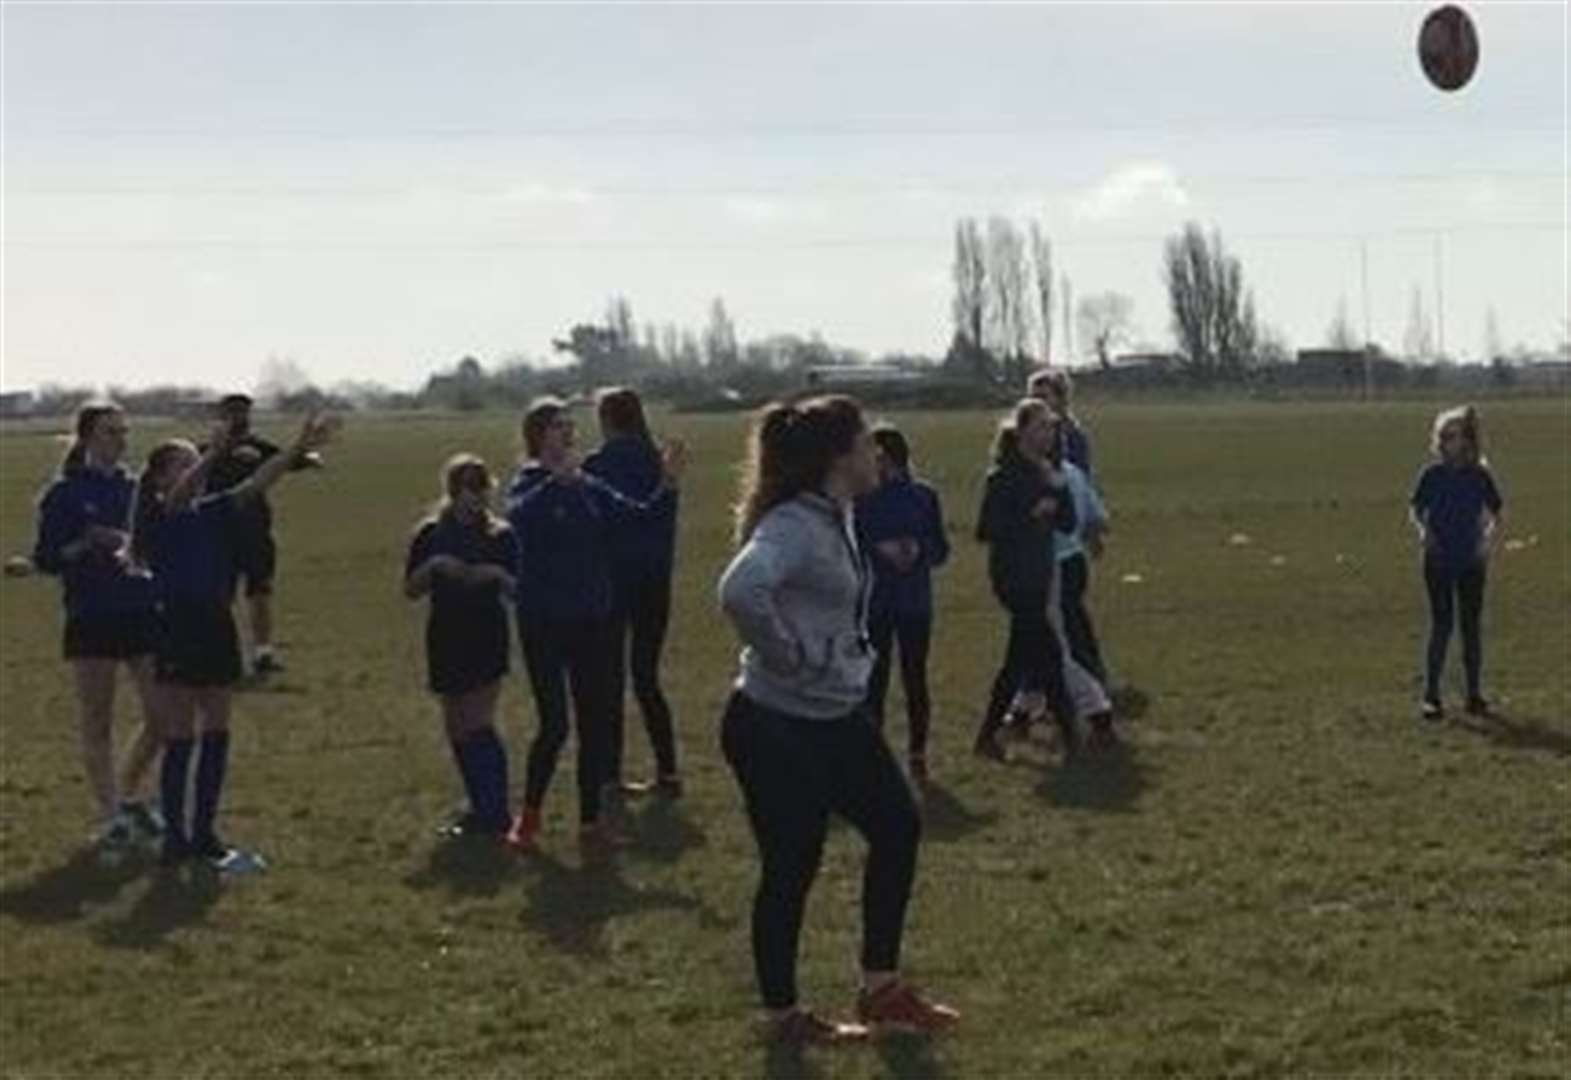 RUGBY UNION: Great turnout for girls development day